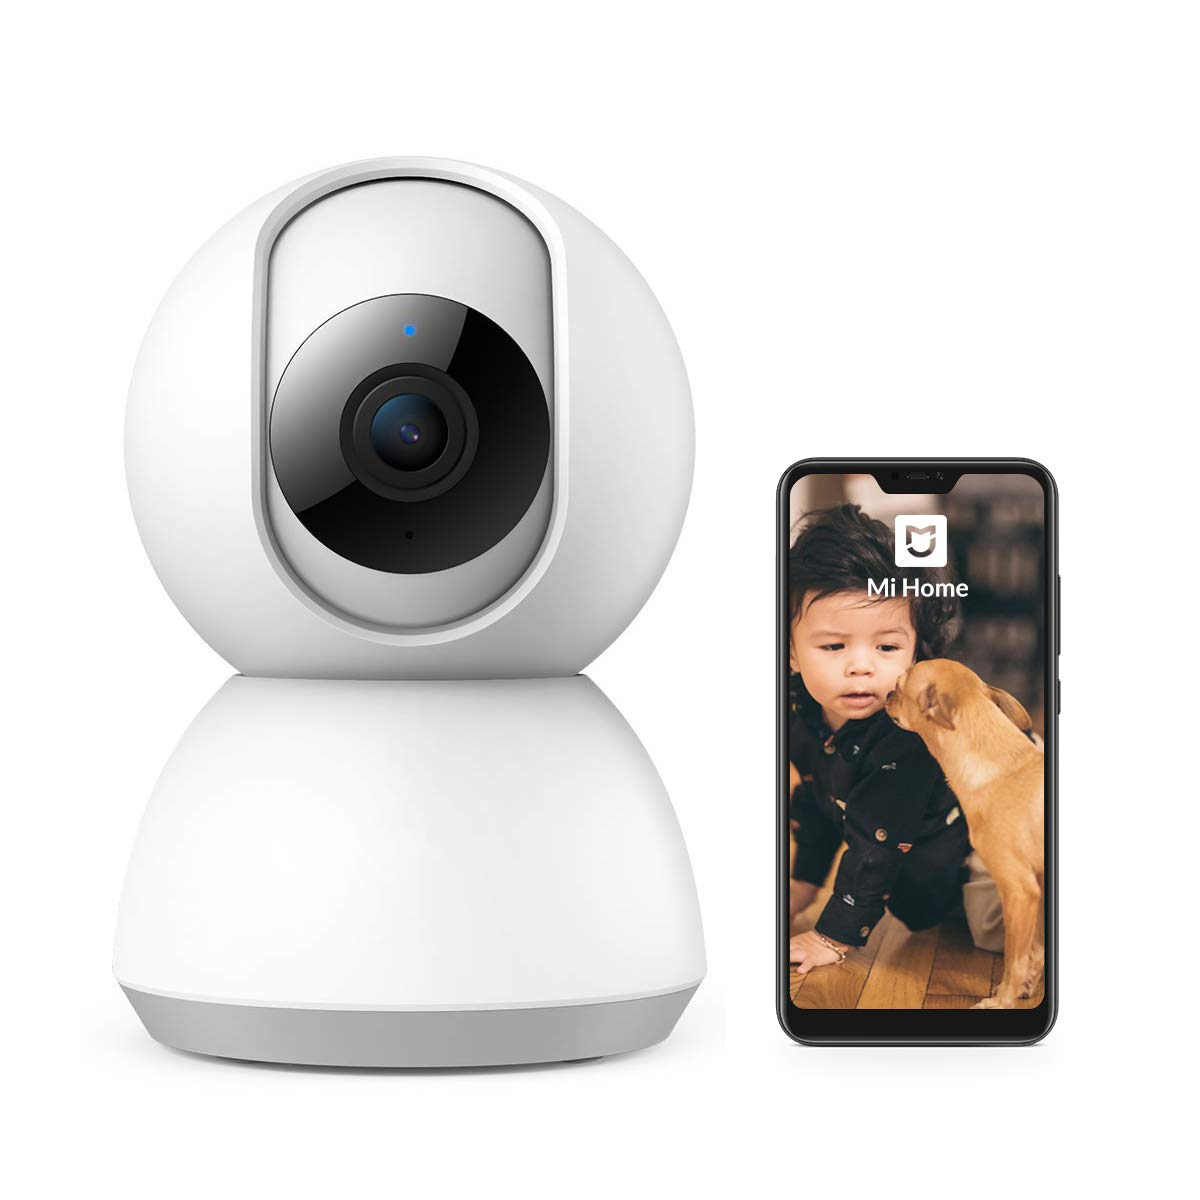 MIHome 360 Camera 1080P Surveillance Smart Camera with Two-Way Audio WiFi Indoor Dome Camera for Pet Baby Elder Monitor HD Night Vision Remote Monitor with iOS Android No SD